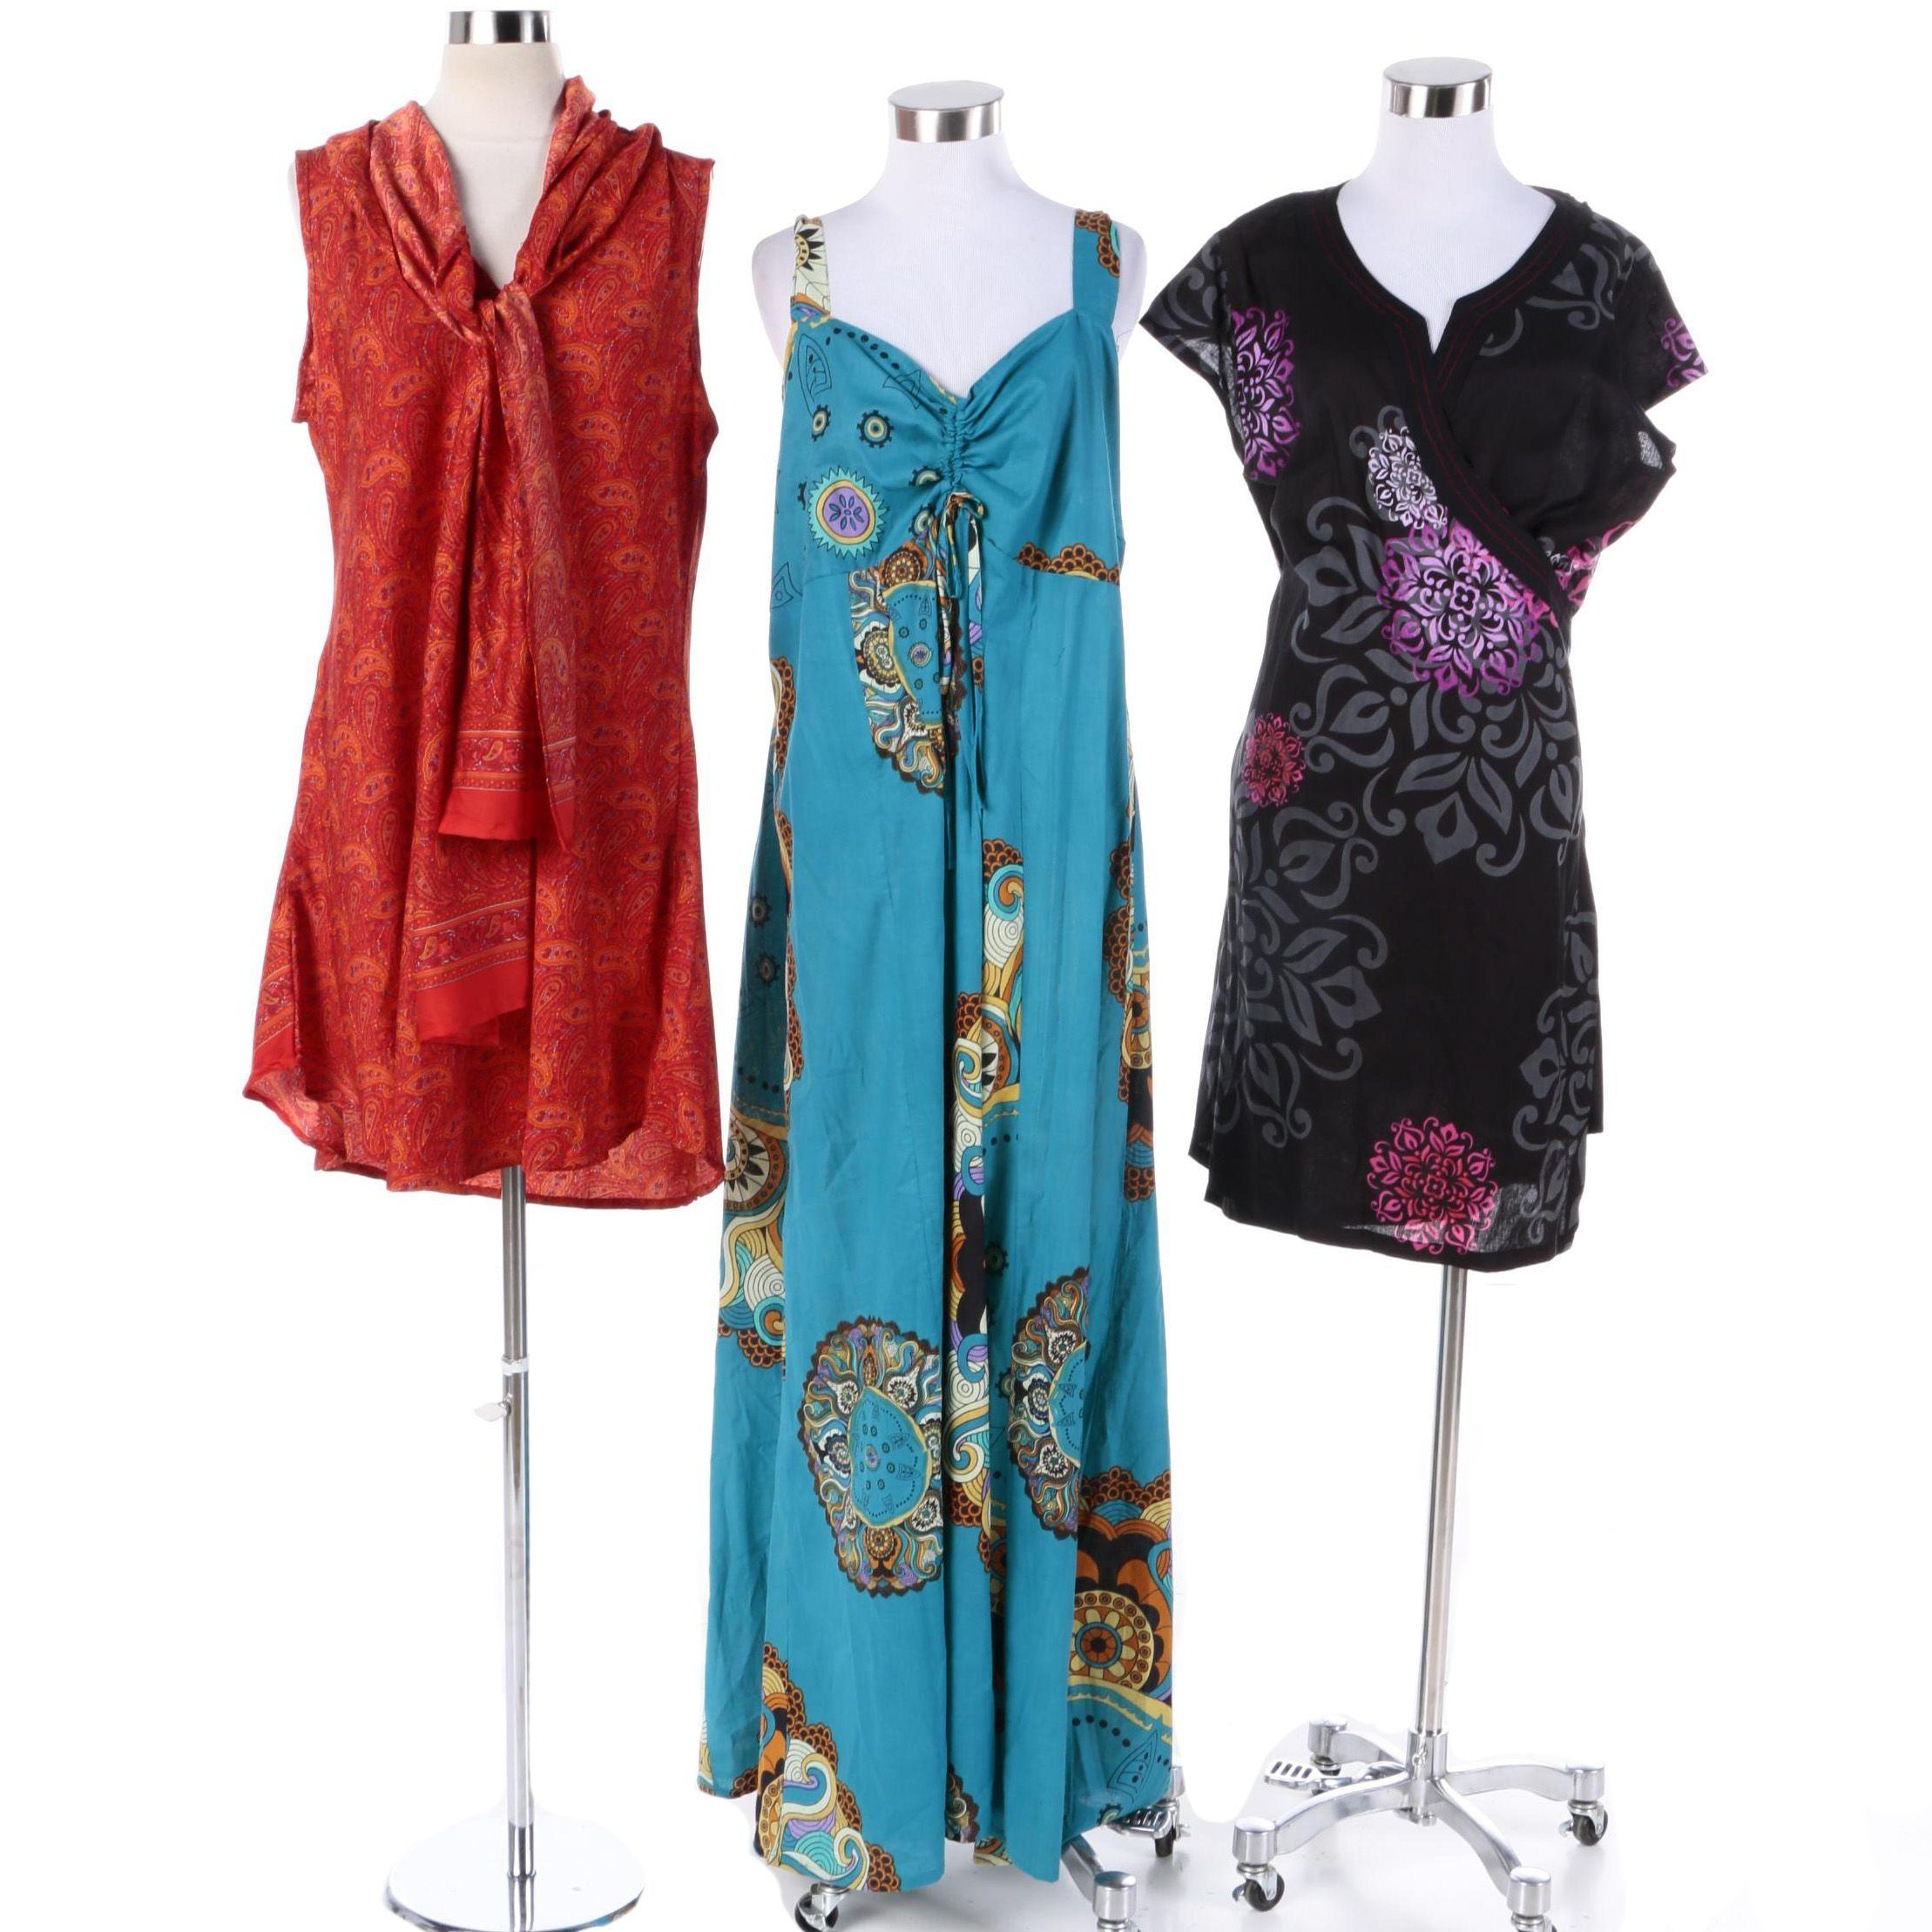 Women's Aller Simplement Printed Dresses Including Maxi Dress